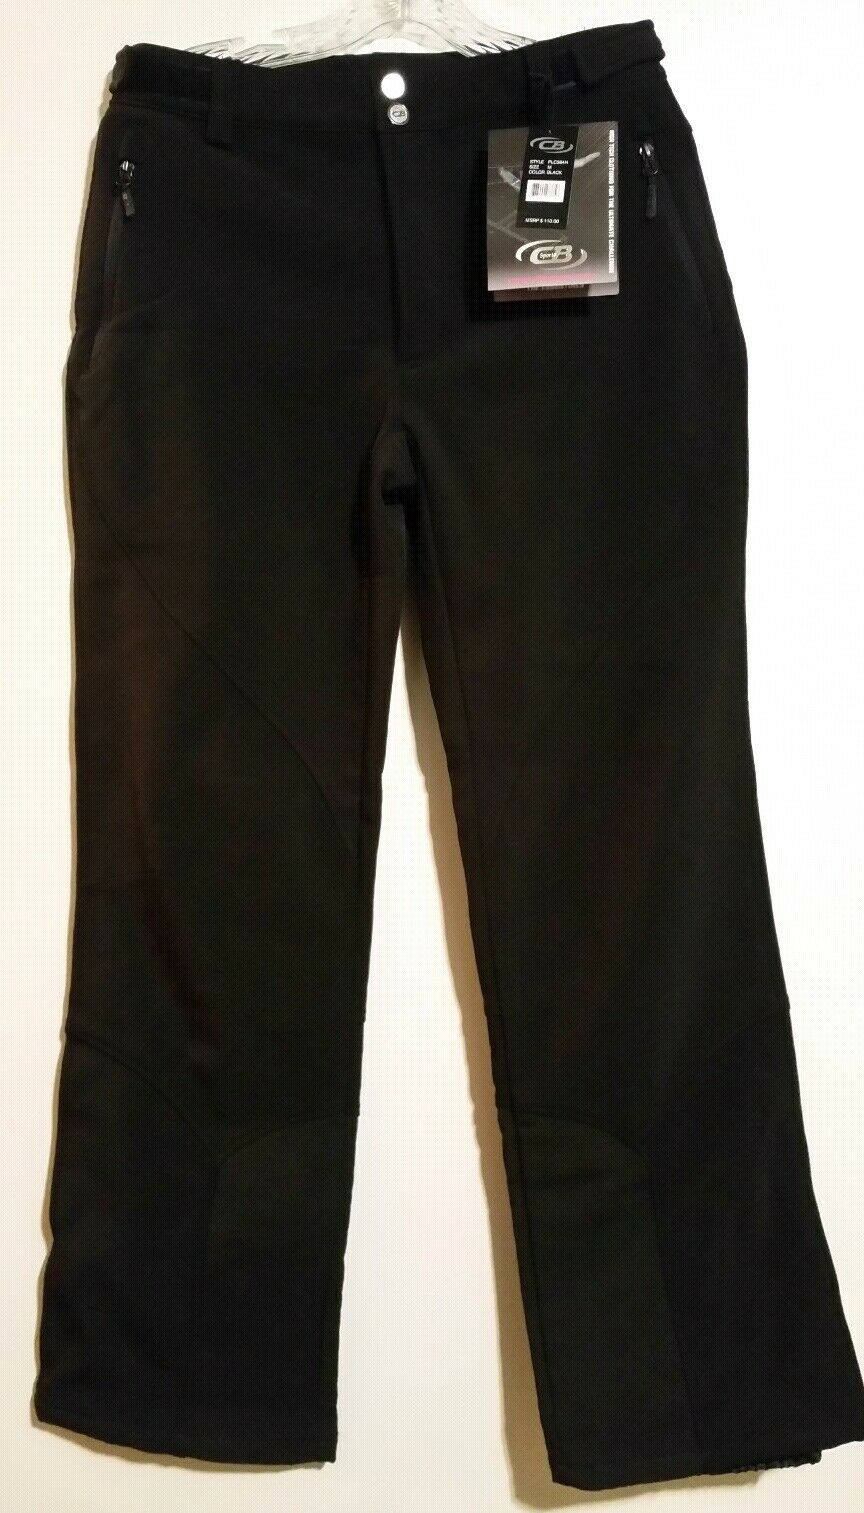 CB Soft Shell Men's Ski Pants.  Size M (30-31)  online outlet sale